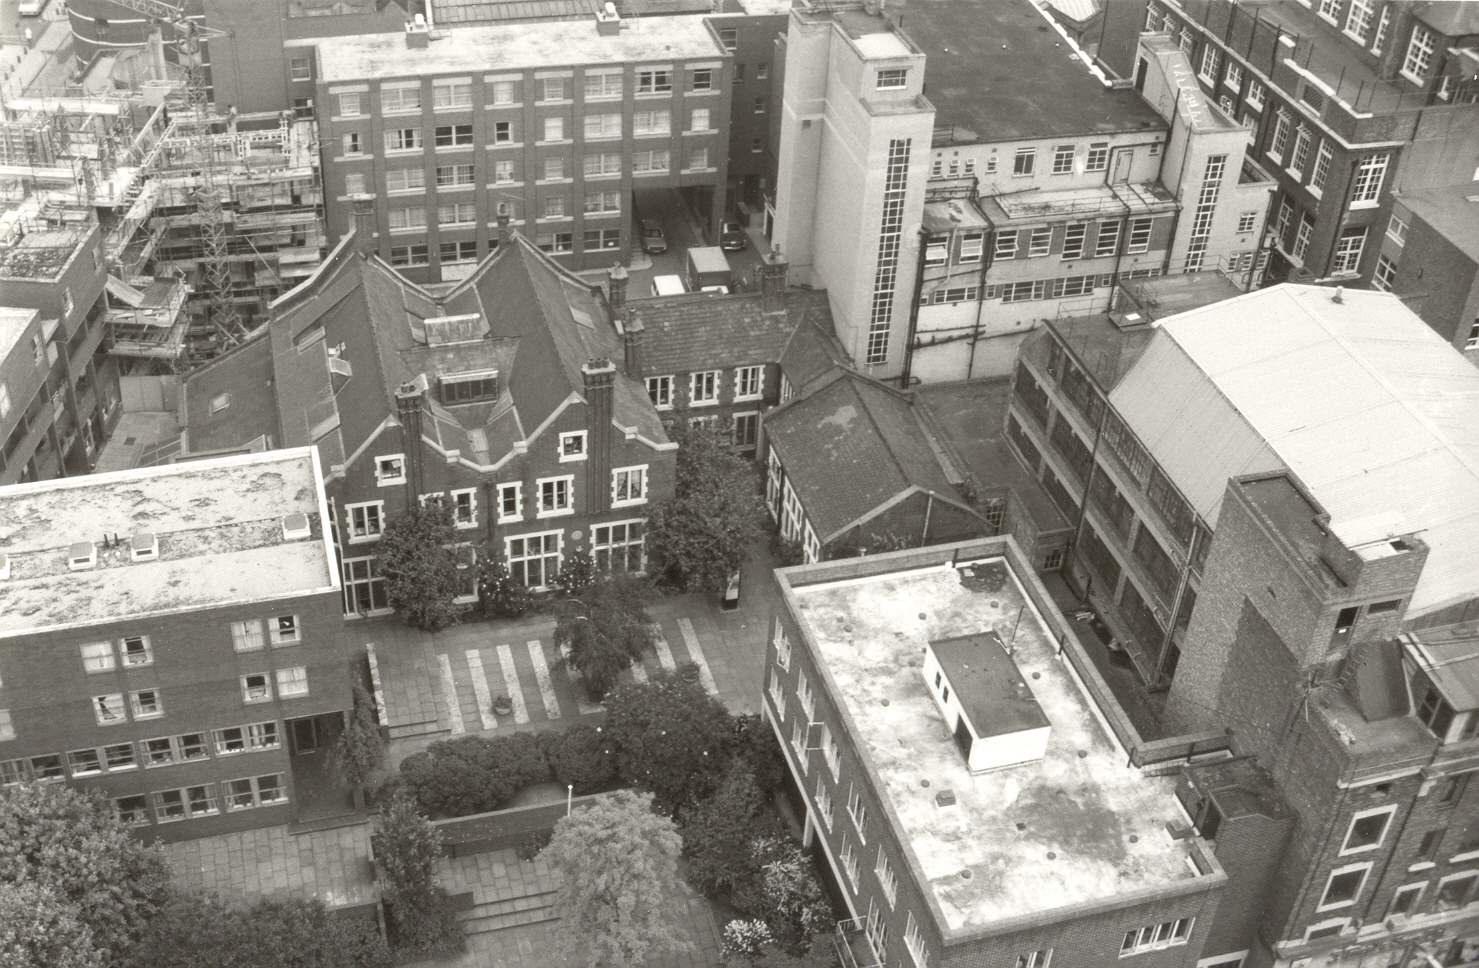 The Buildings of Toynbee Hall